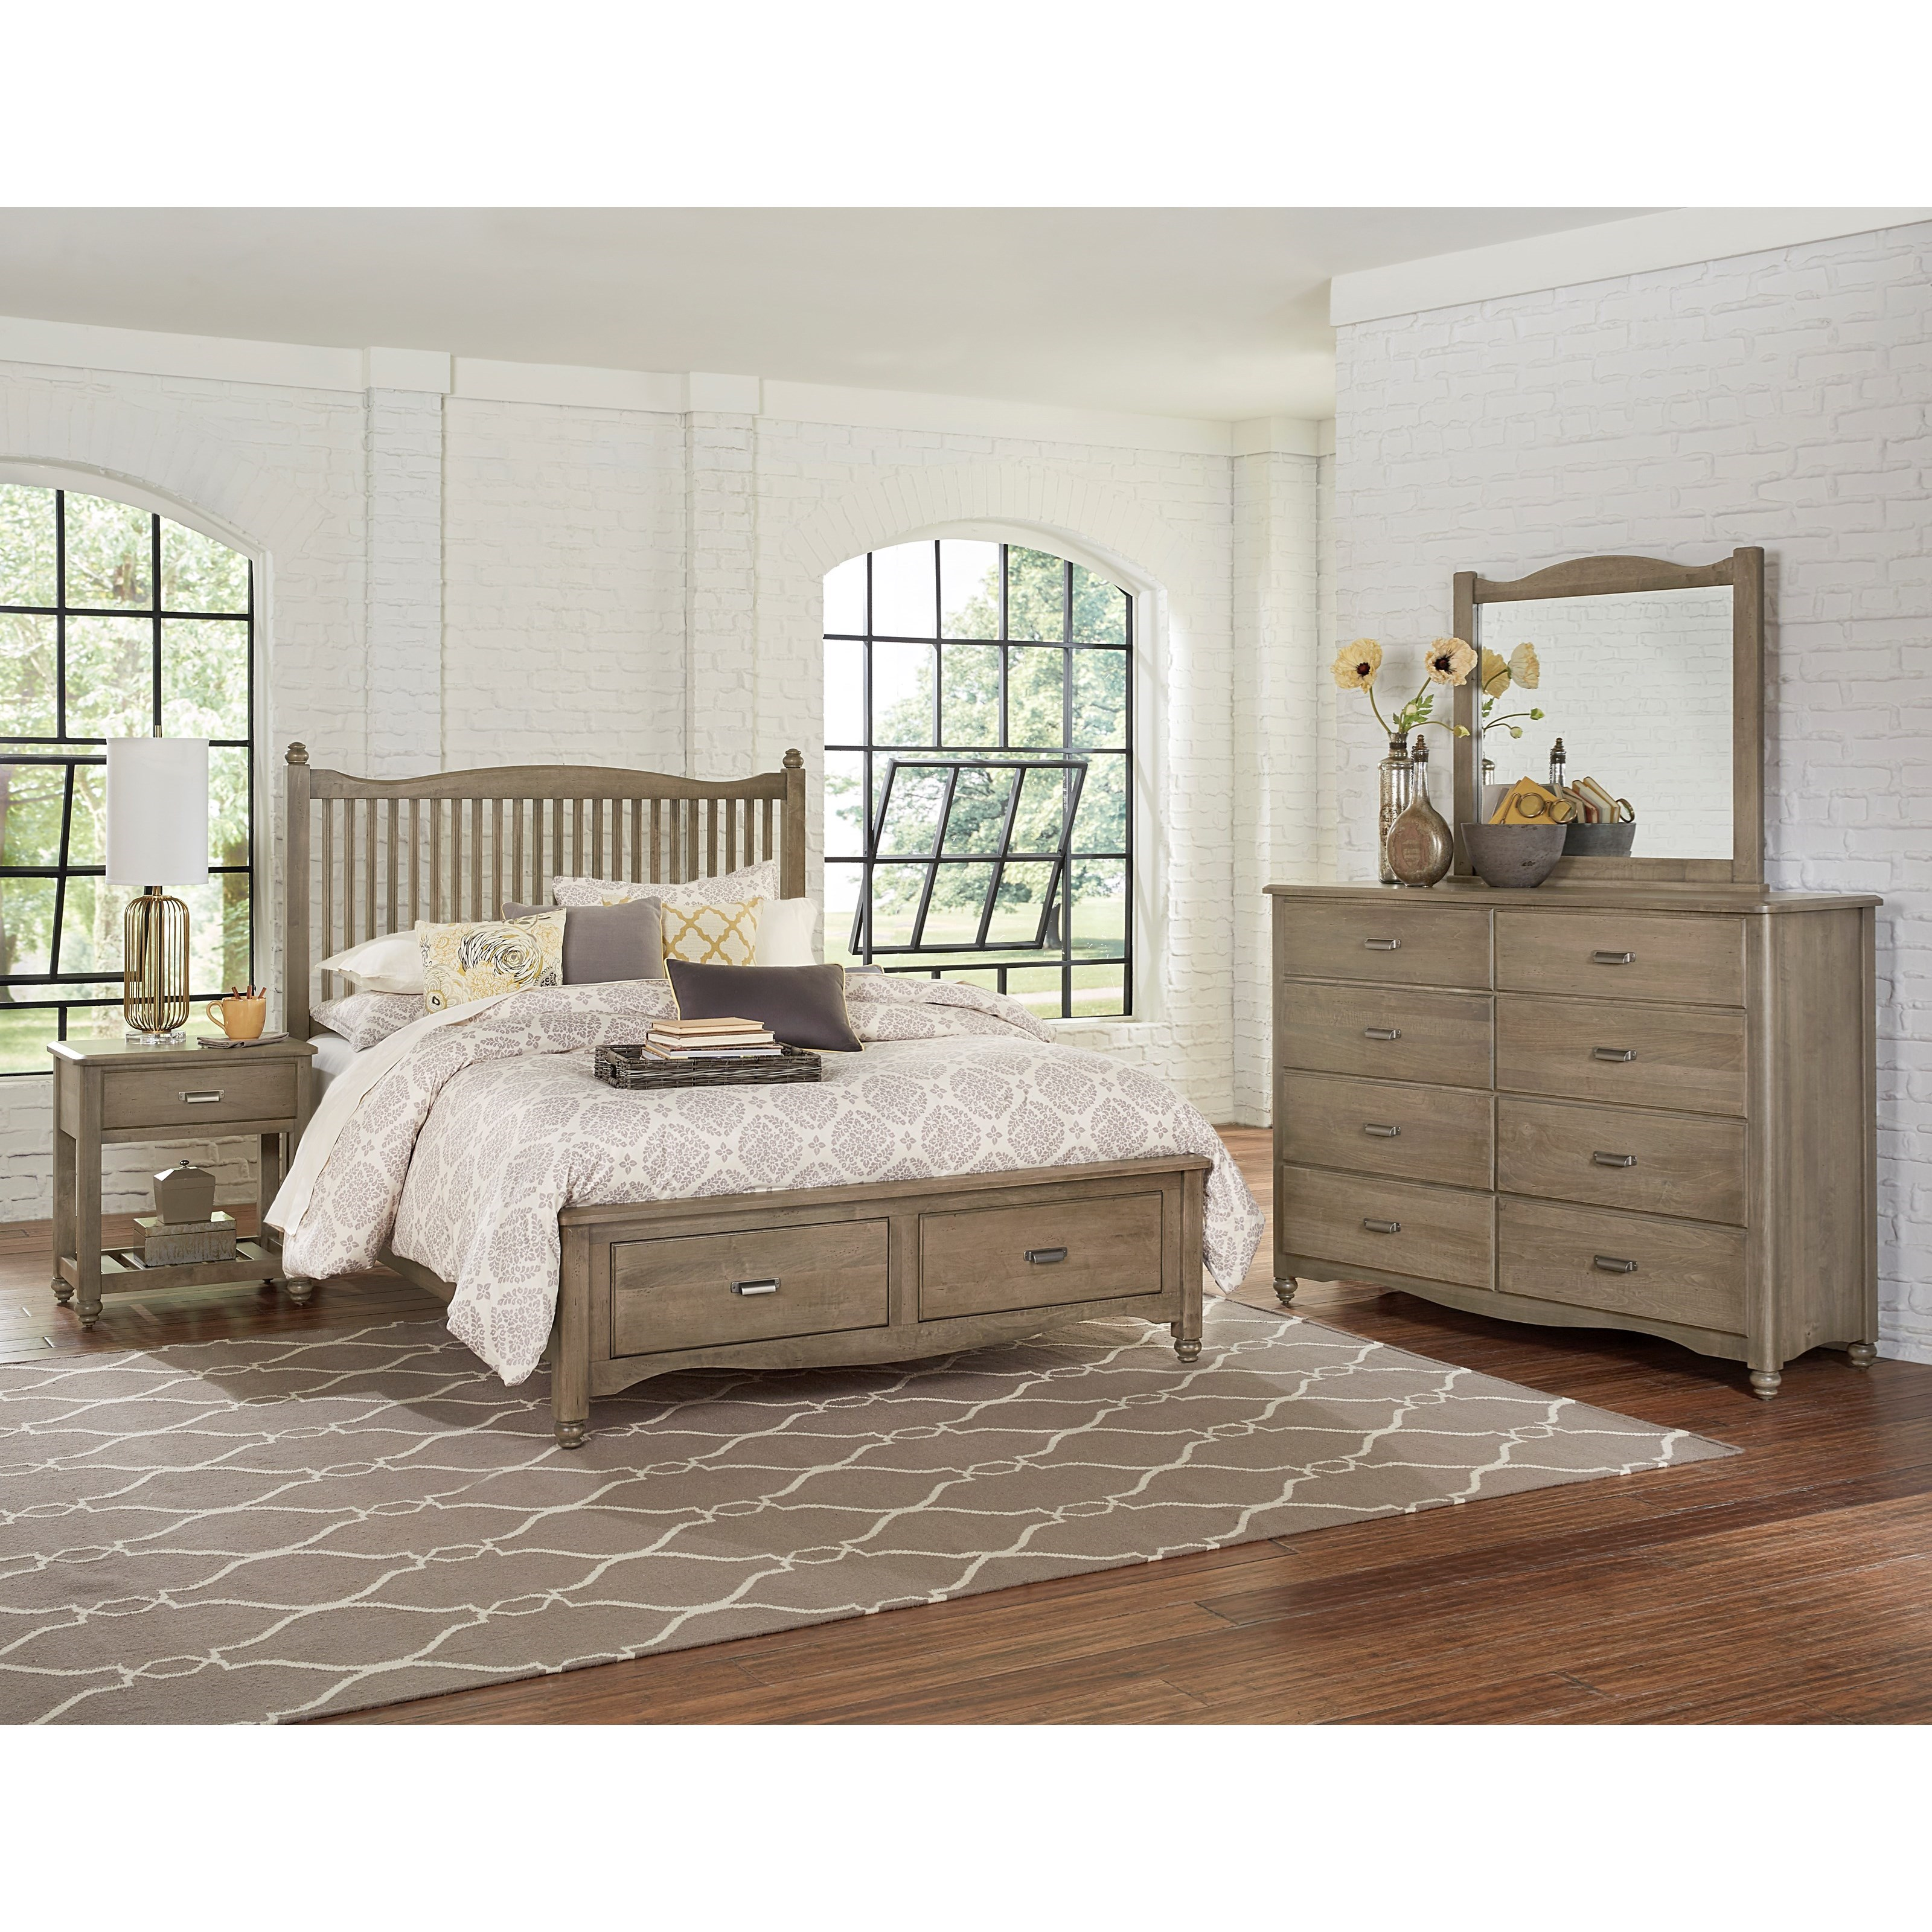 Vaughan Bassett American Maple Queen Bedroom Group - Item Number: 401 Q Bedroom Group 3